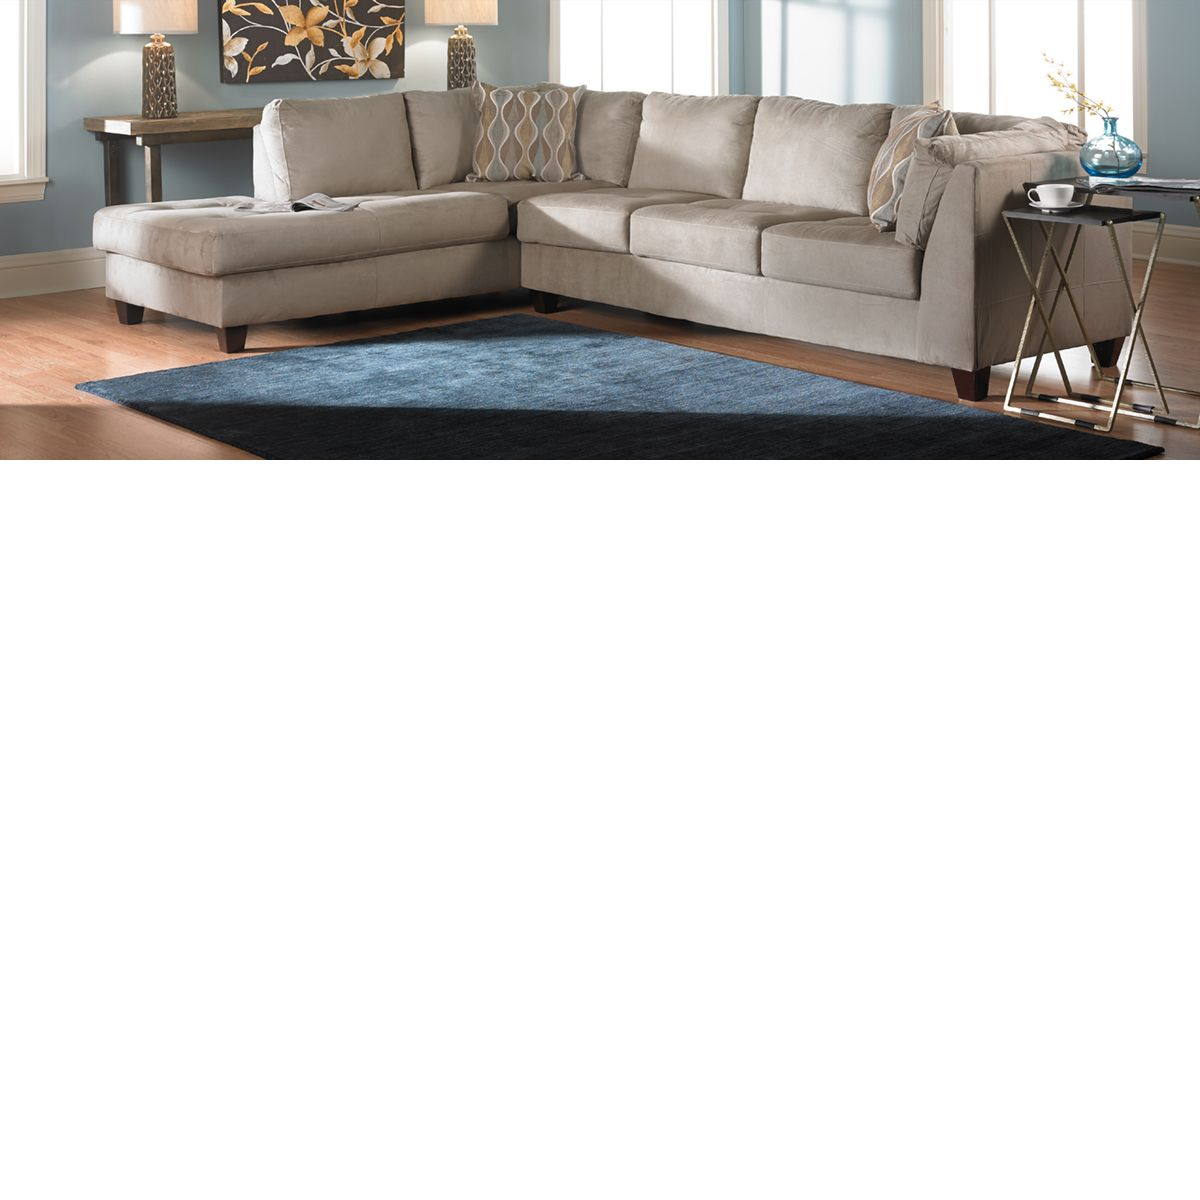 The Dump Sofa Table French Sofas For Sale Furniture Sectional Home